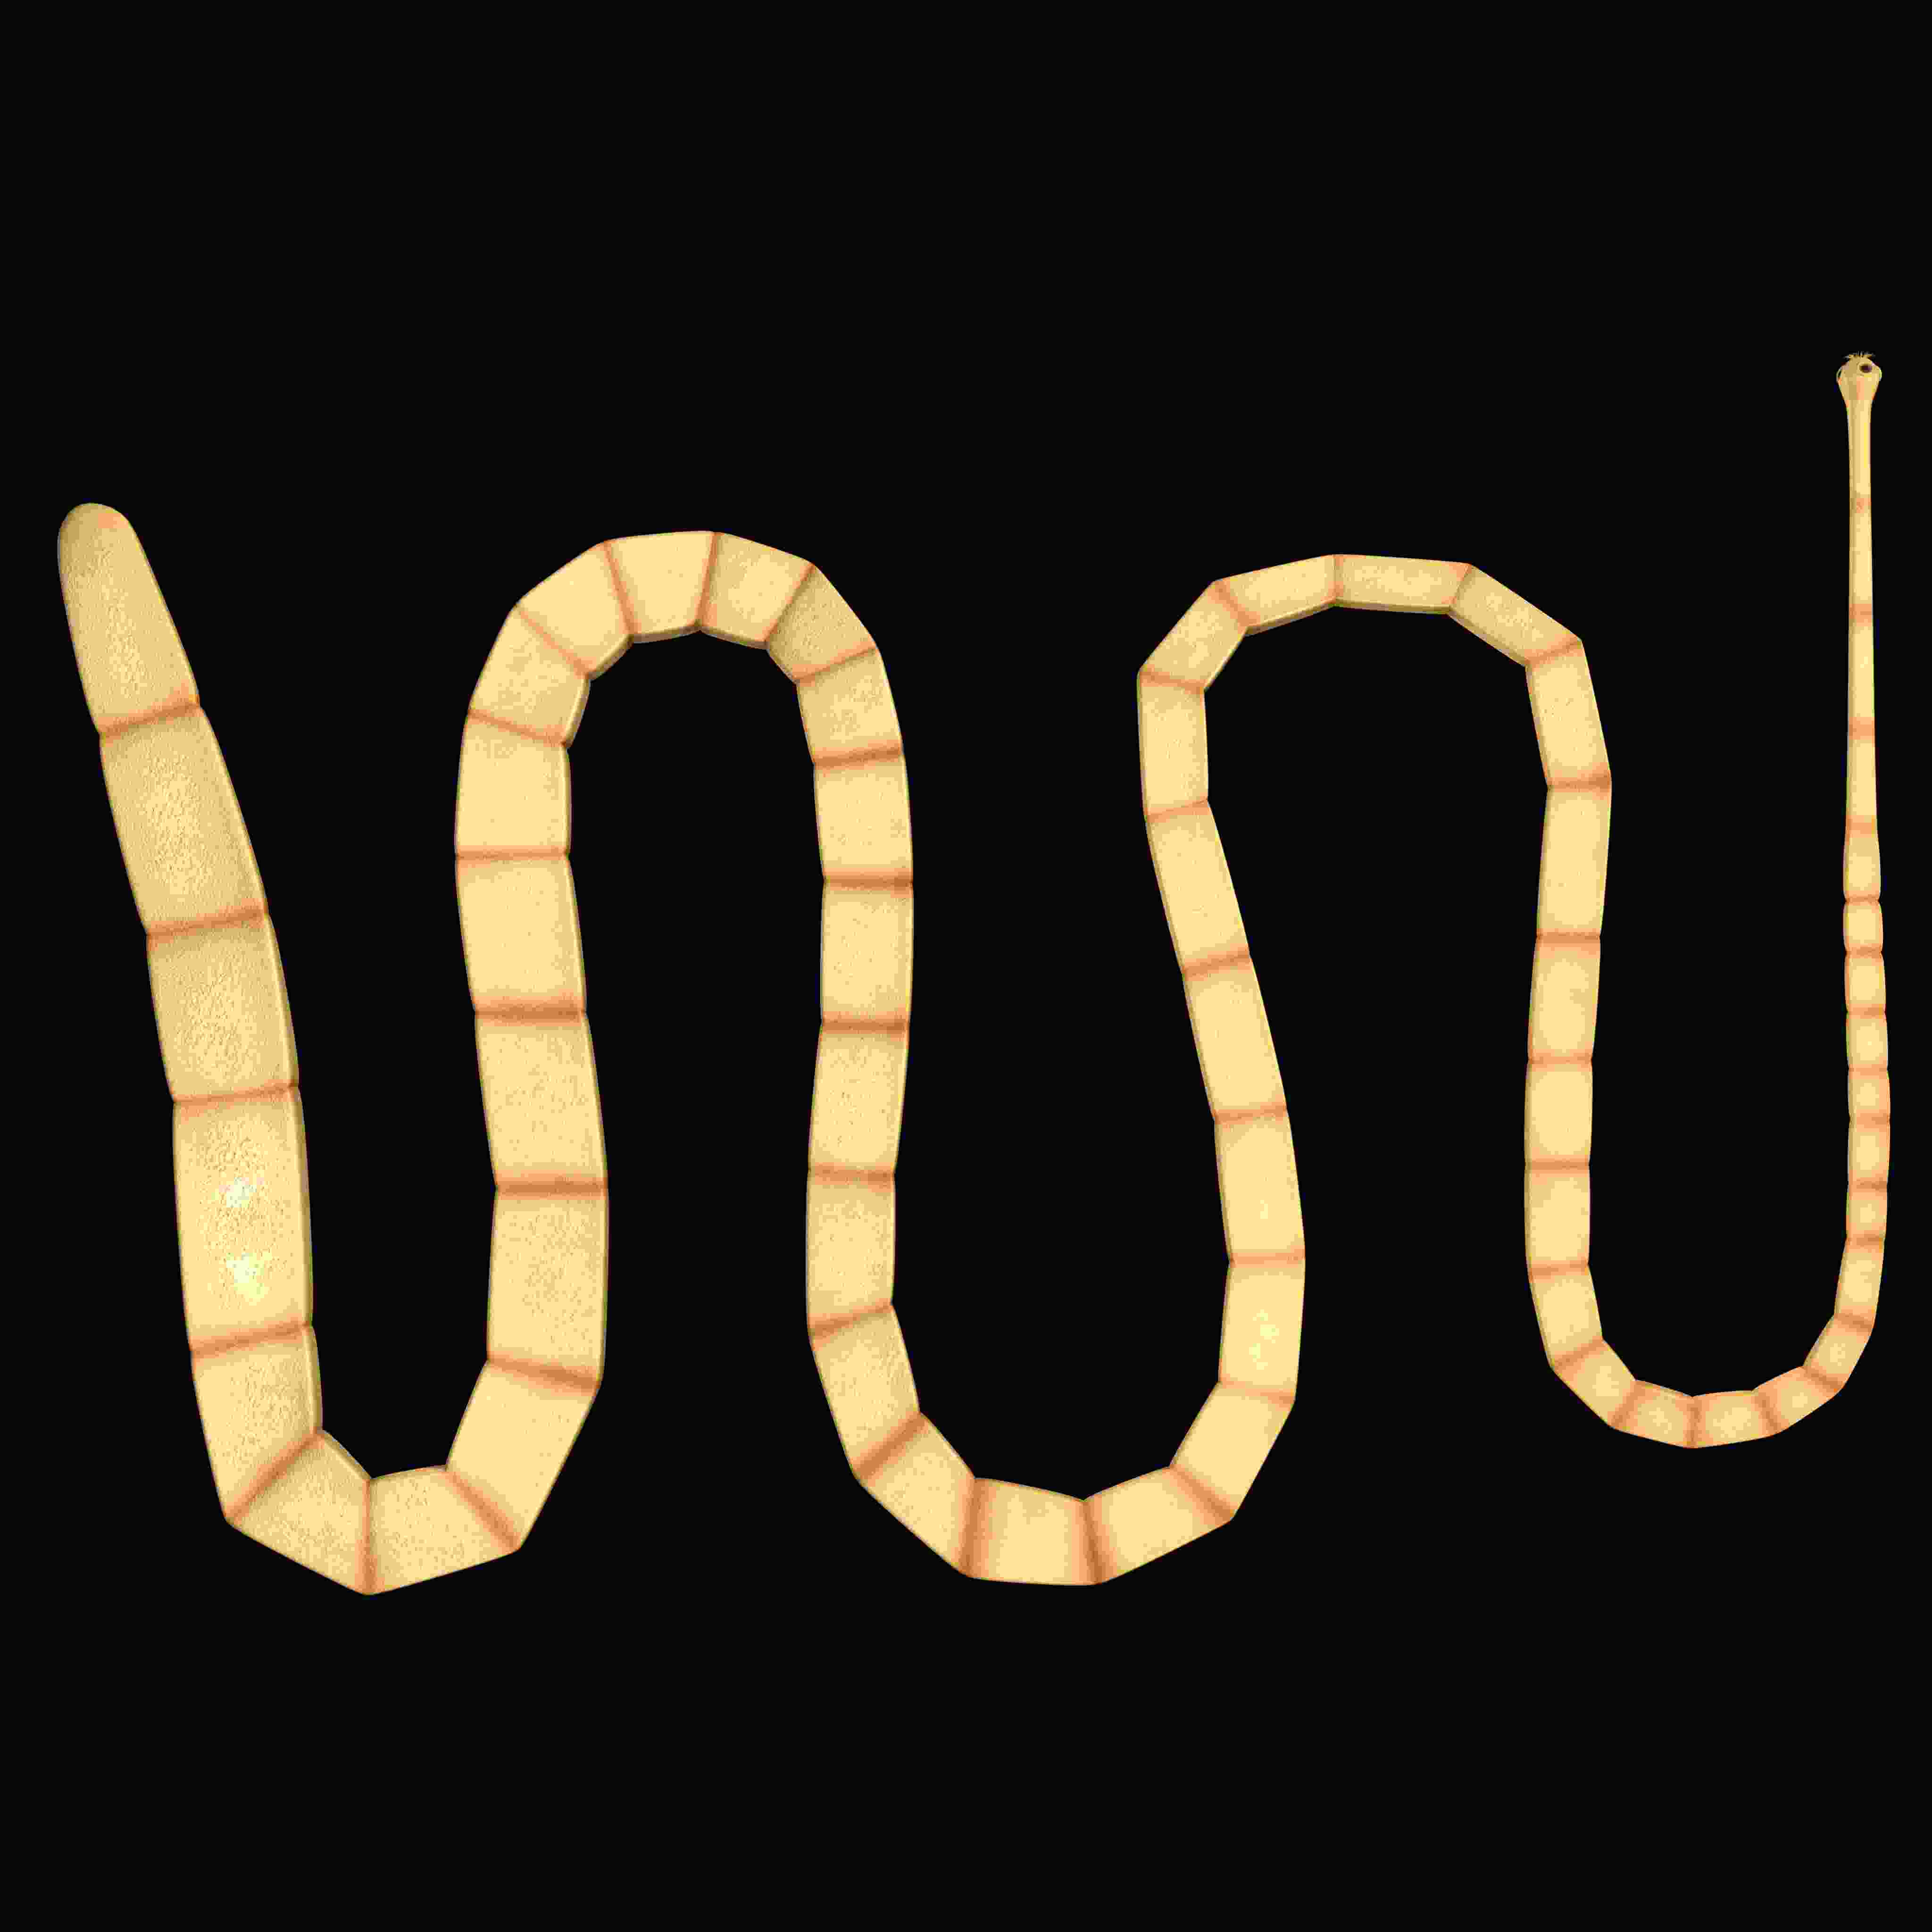 Worm Diseases - Biology Questions and Answers